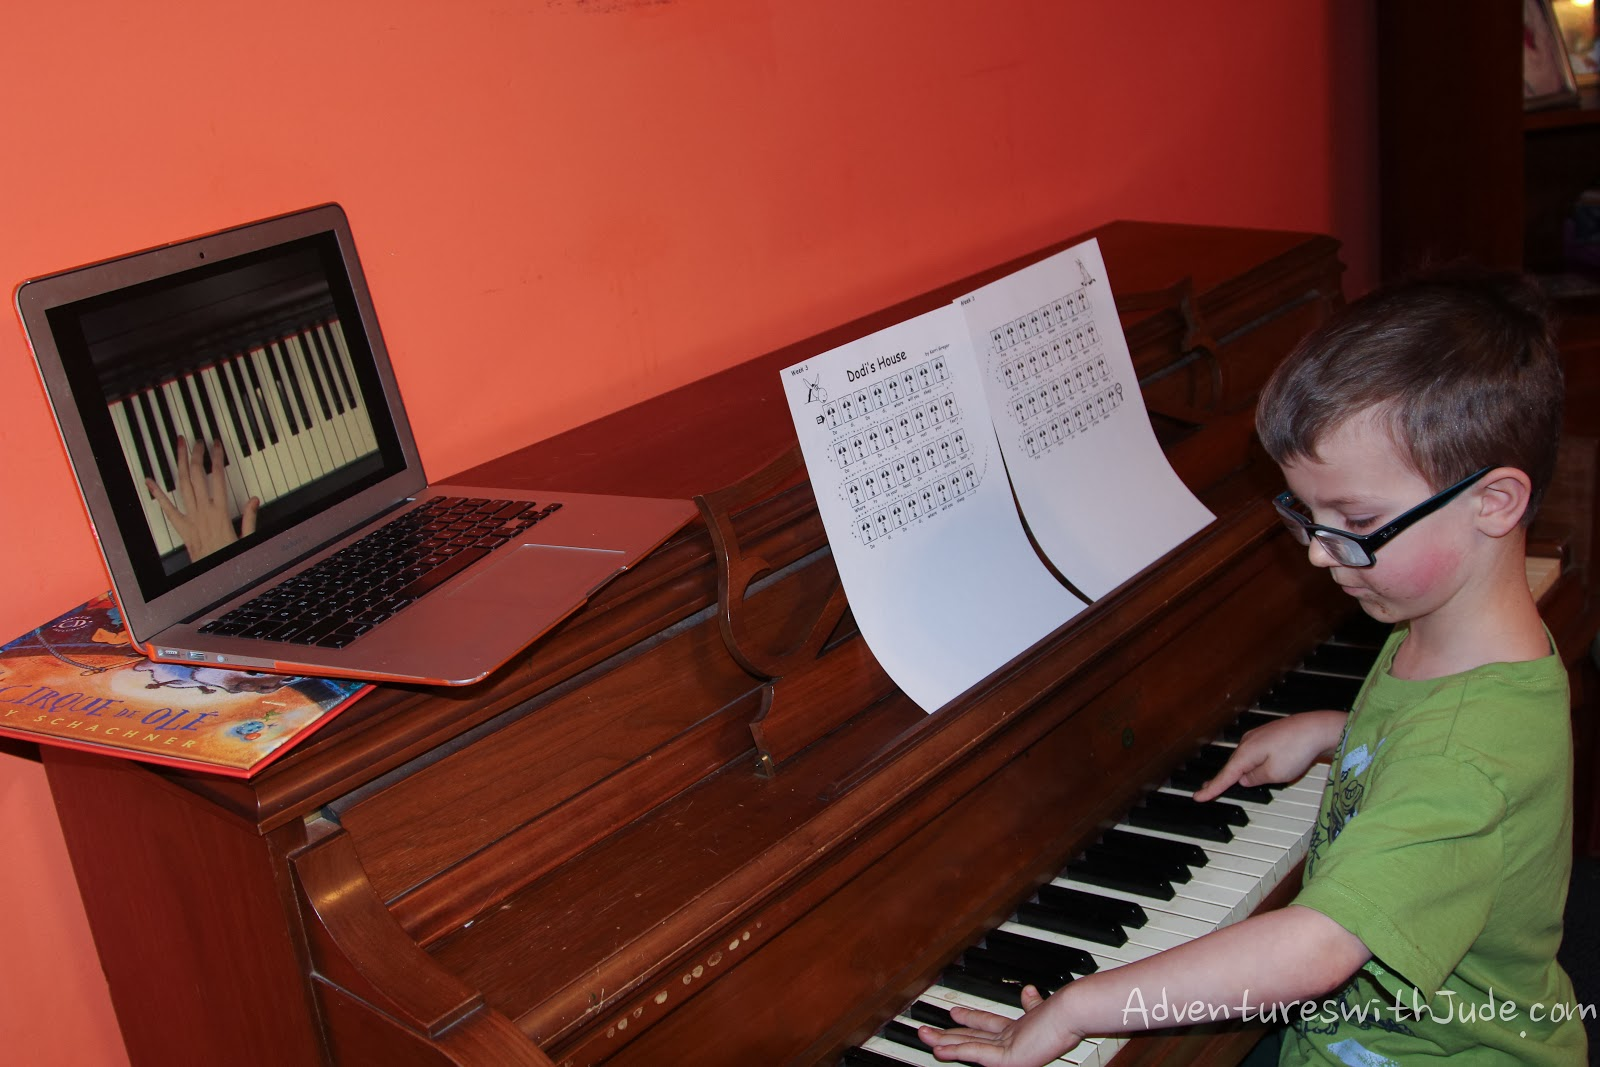 learning to play the piano that has been in the family for four generations